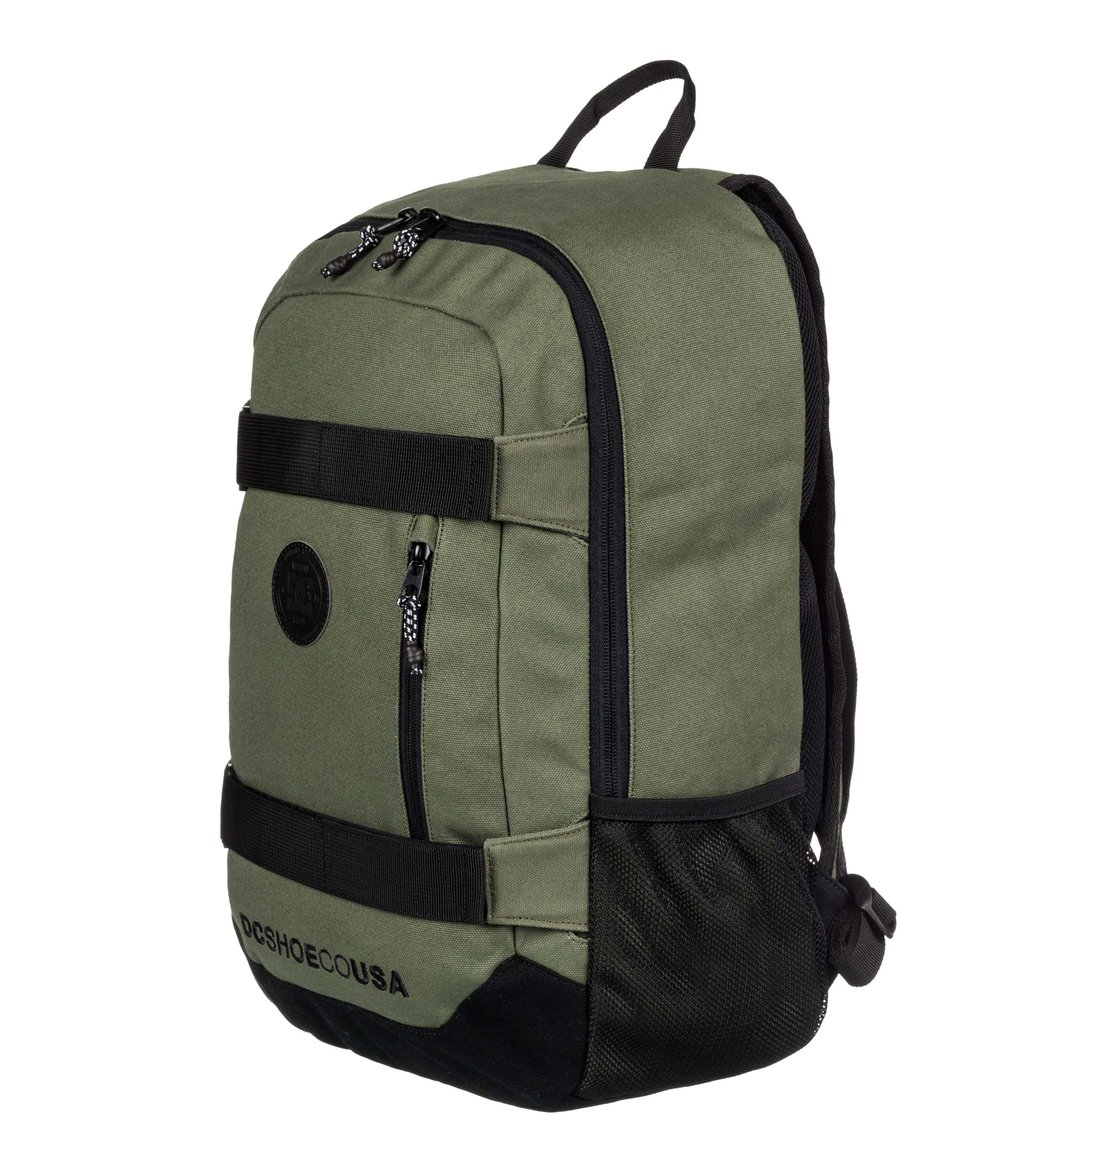 c75695f8a93 1 Clocked Canvas Medium 18L Backpack EDYBP03144 DC Shoes